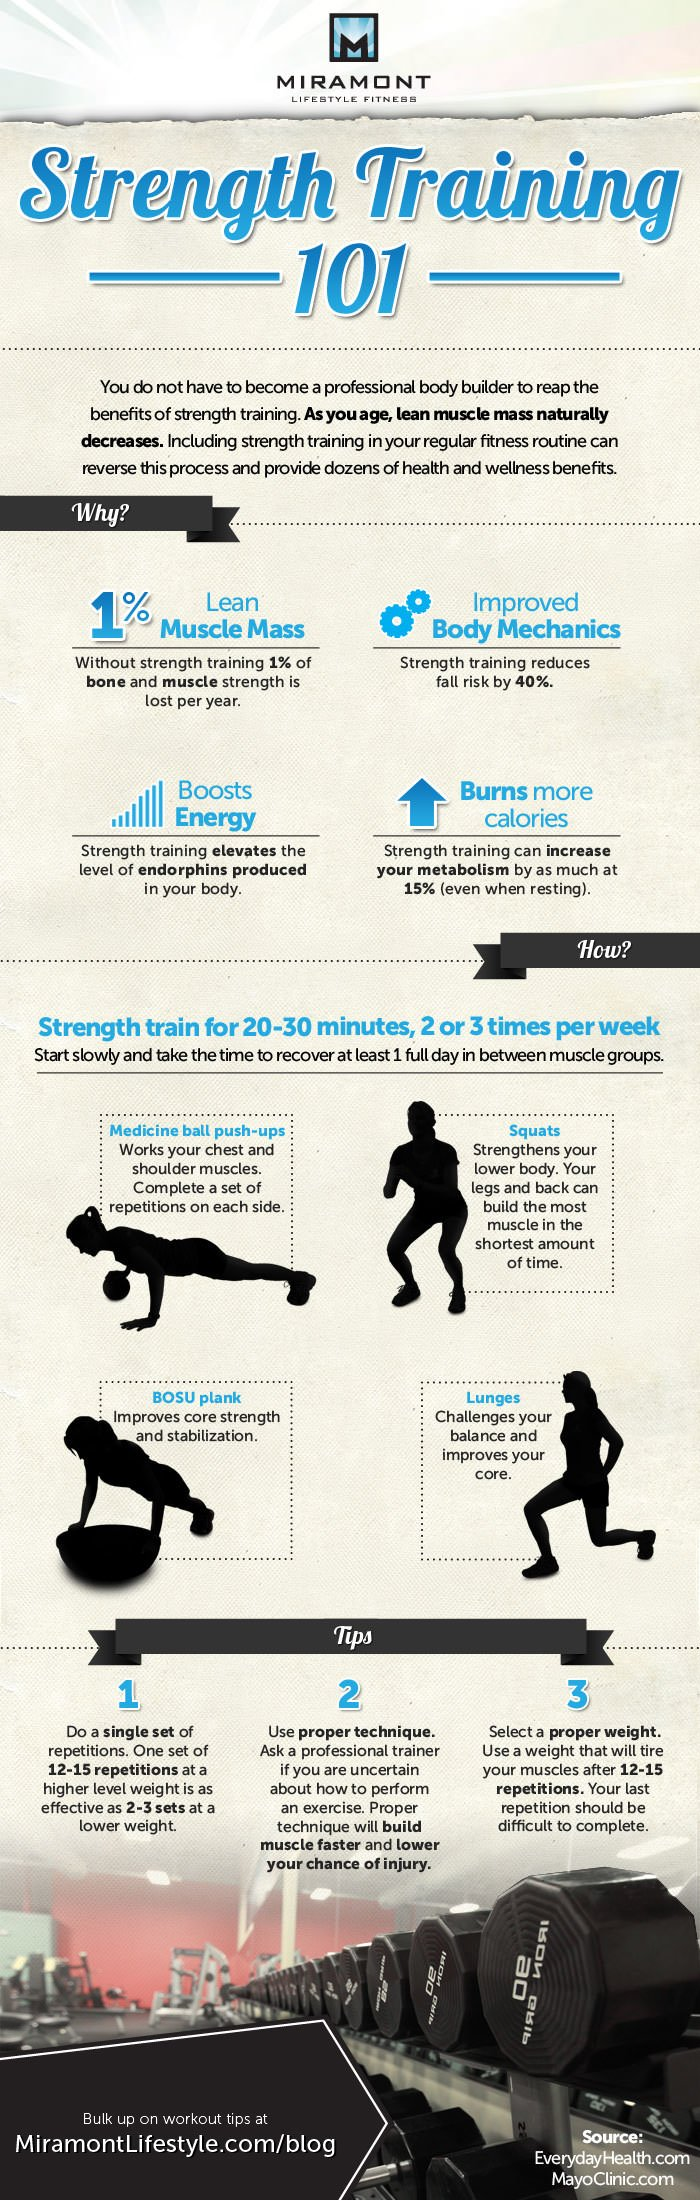 Strength Training Infographic